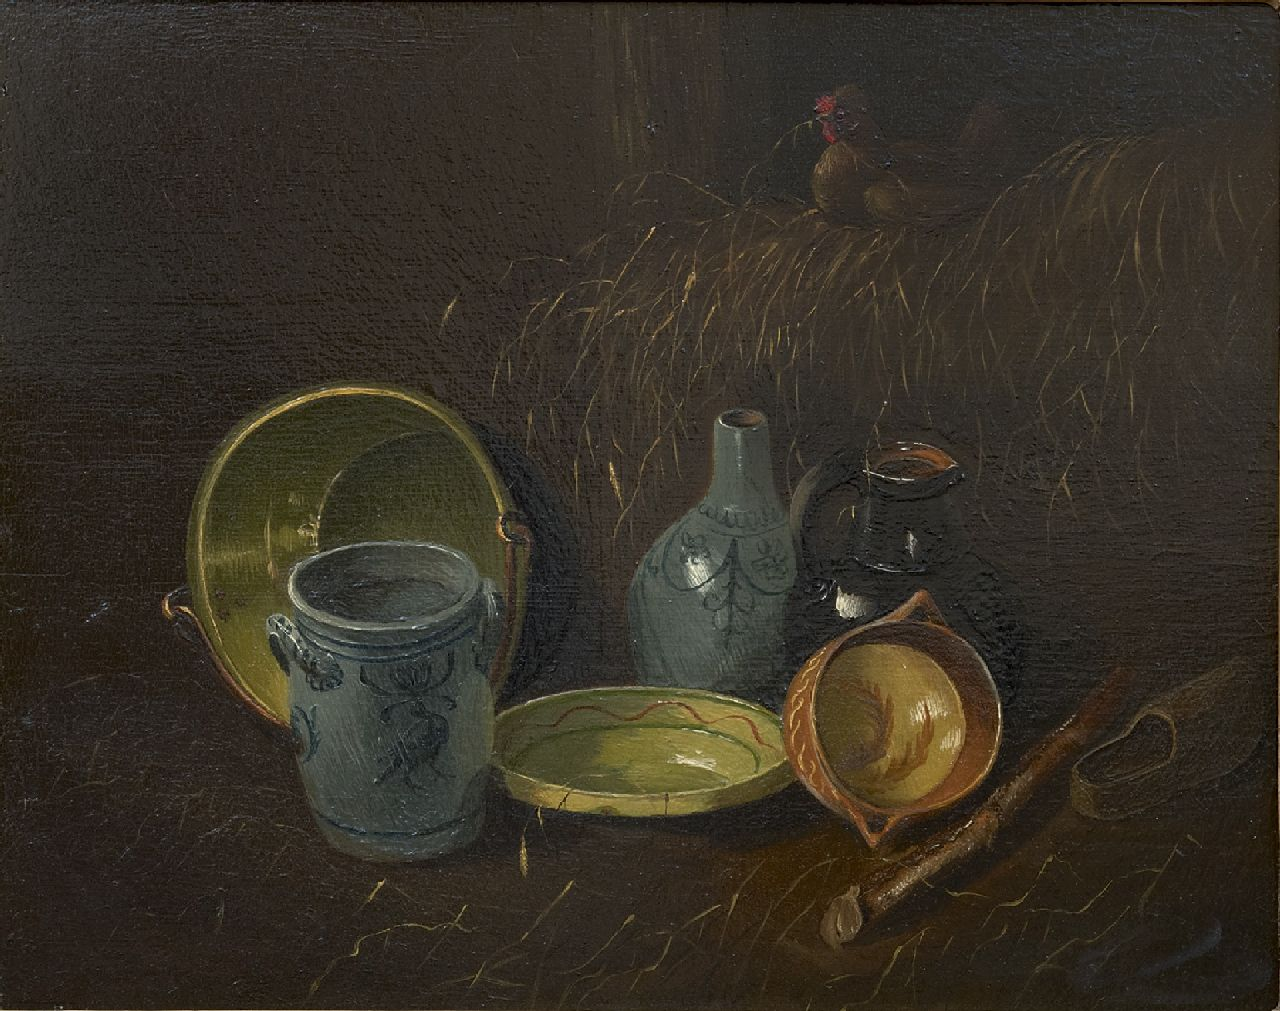 Wilhelm Albertus Lammers | A still life with kitchen attributes, oil on panel, 22.4 x 28.3 cm